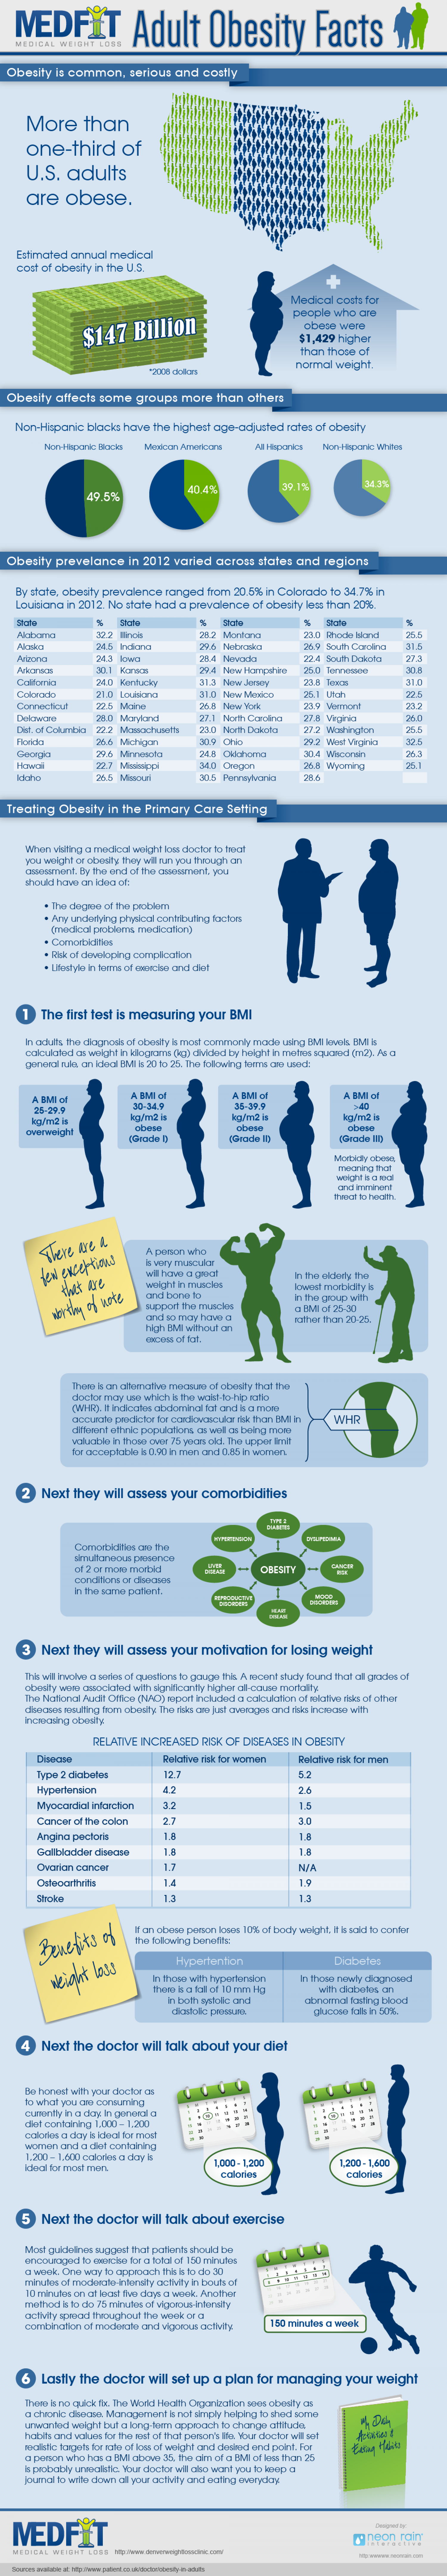 Adult Obesity Facts Infographic